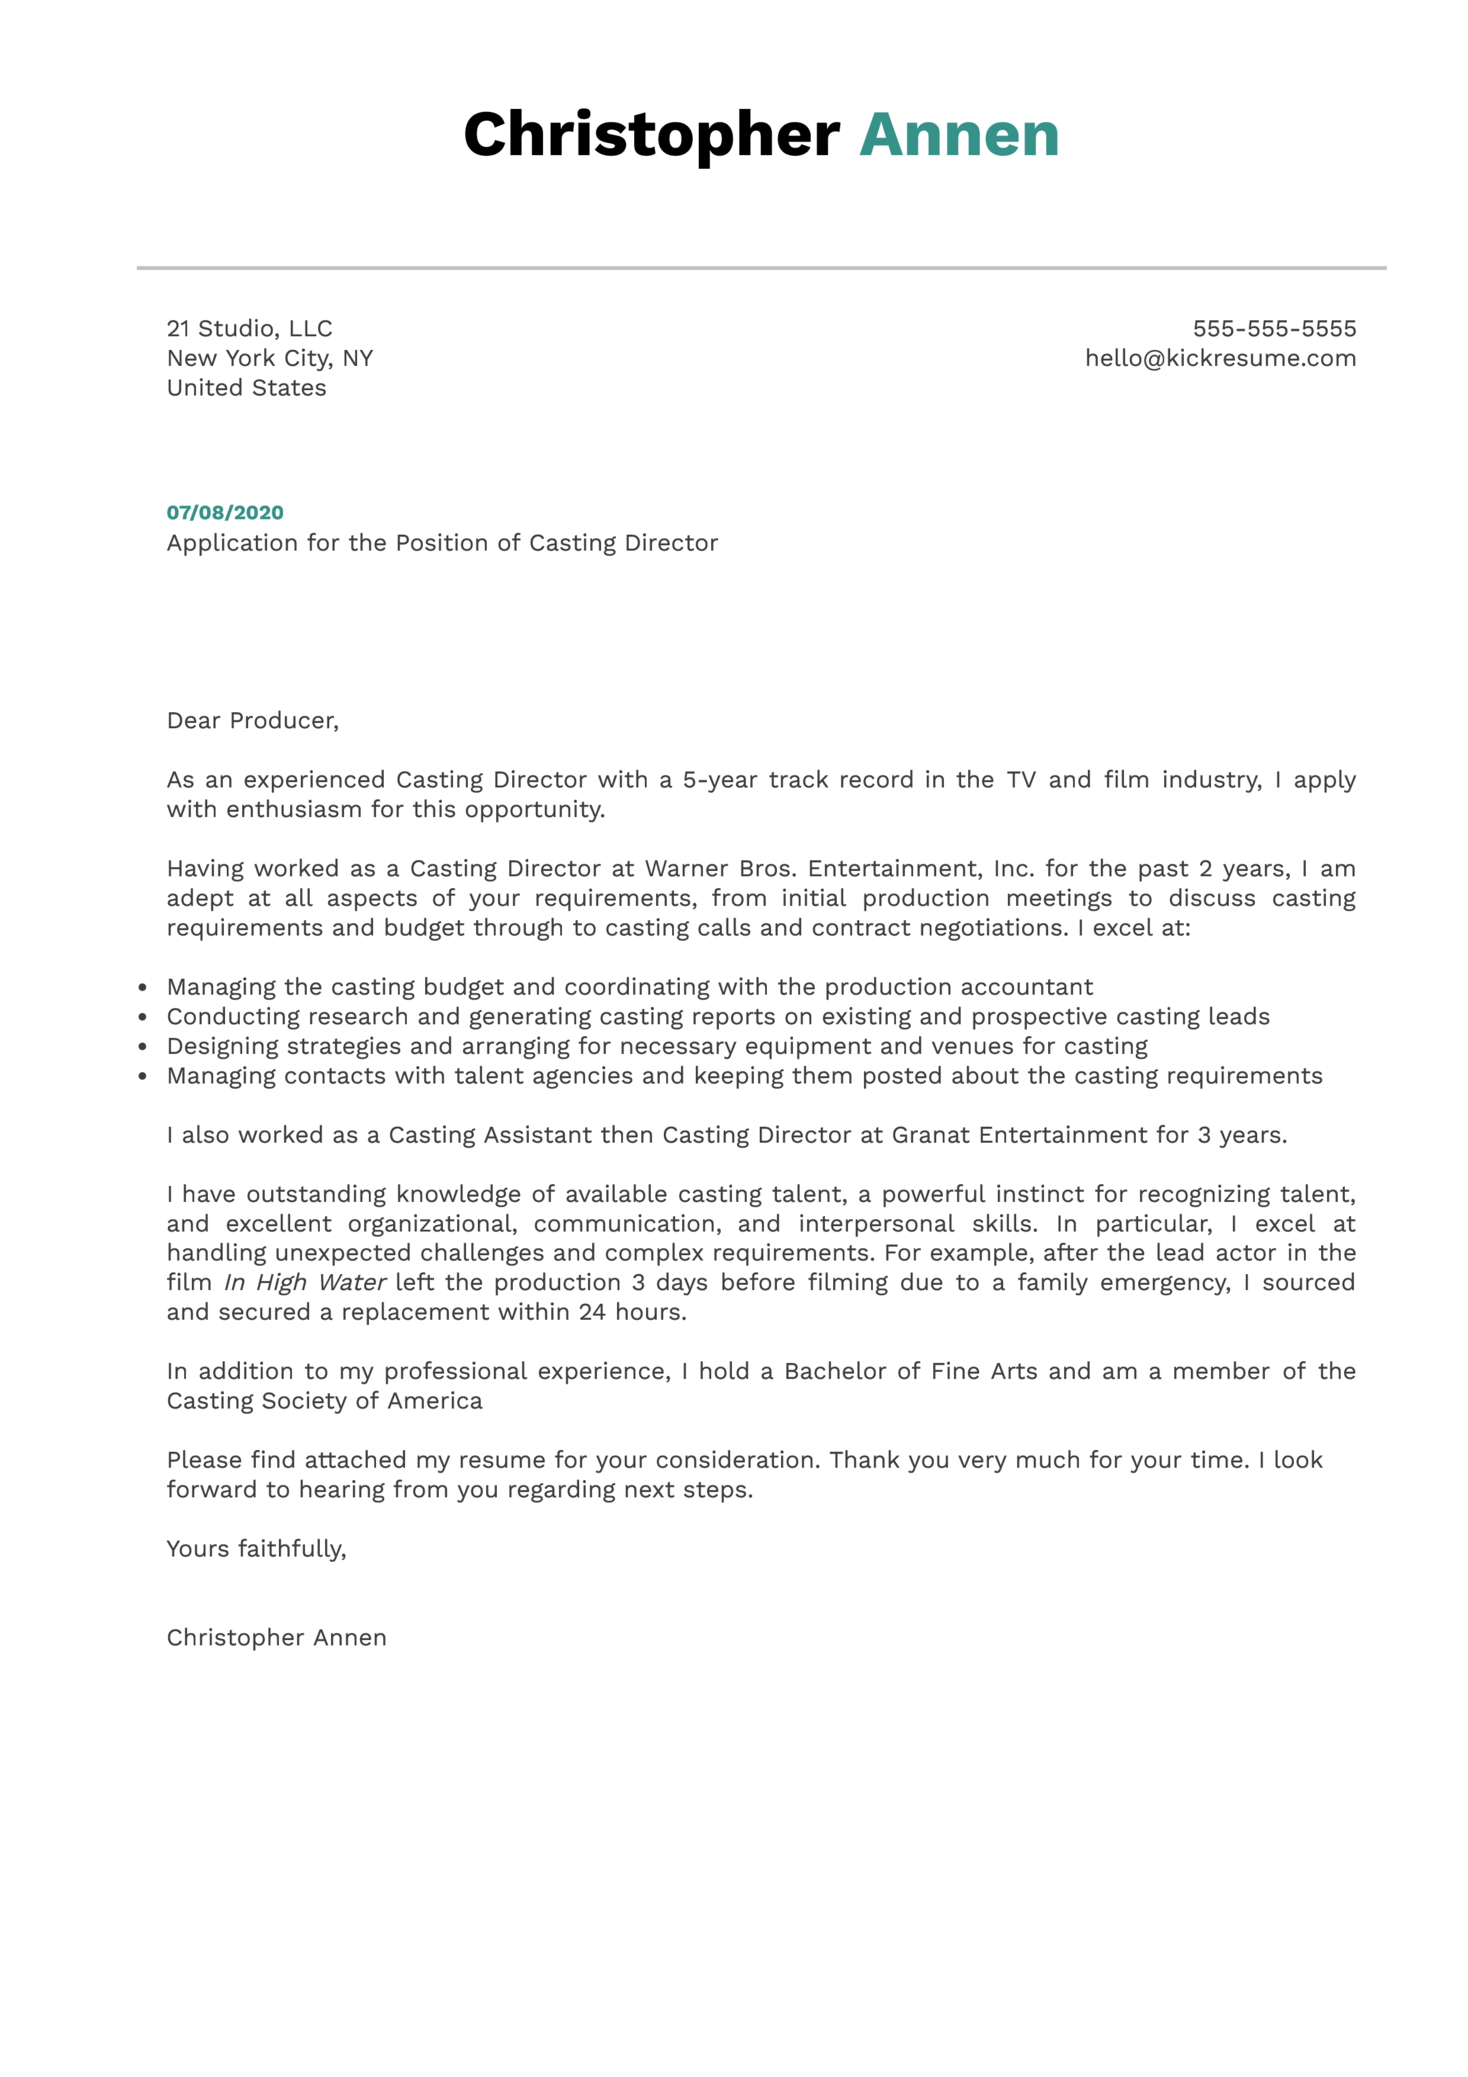 Casting Director Cover Letter Example